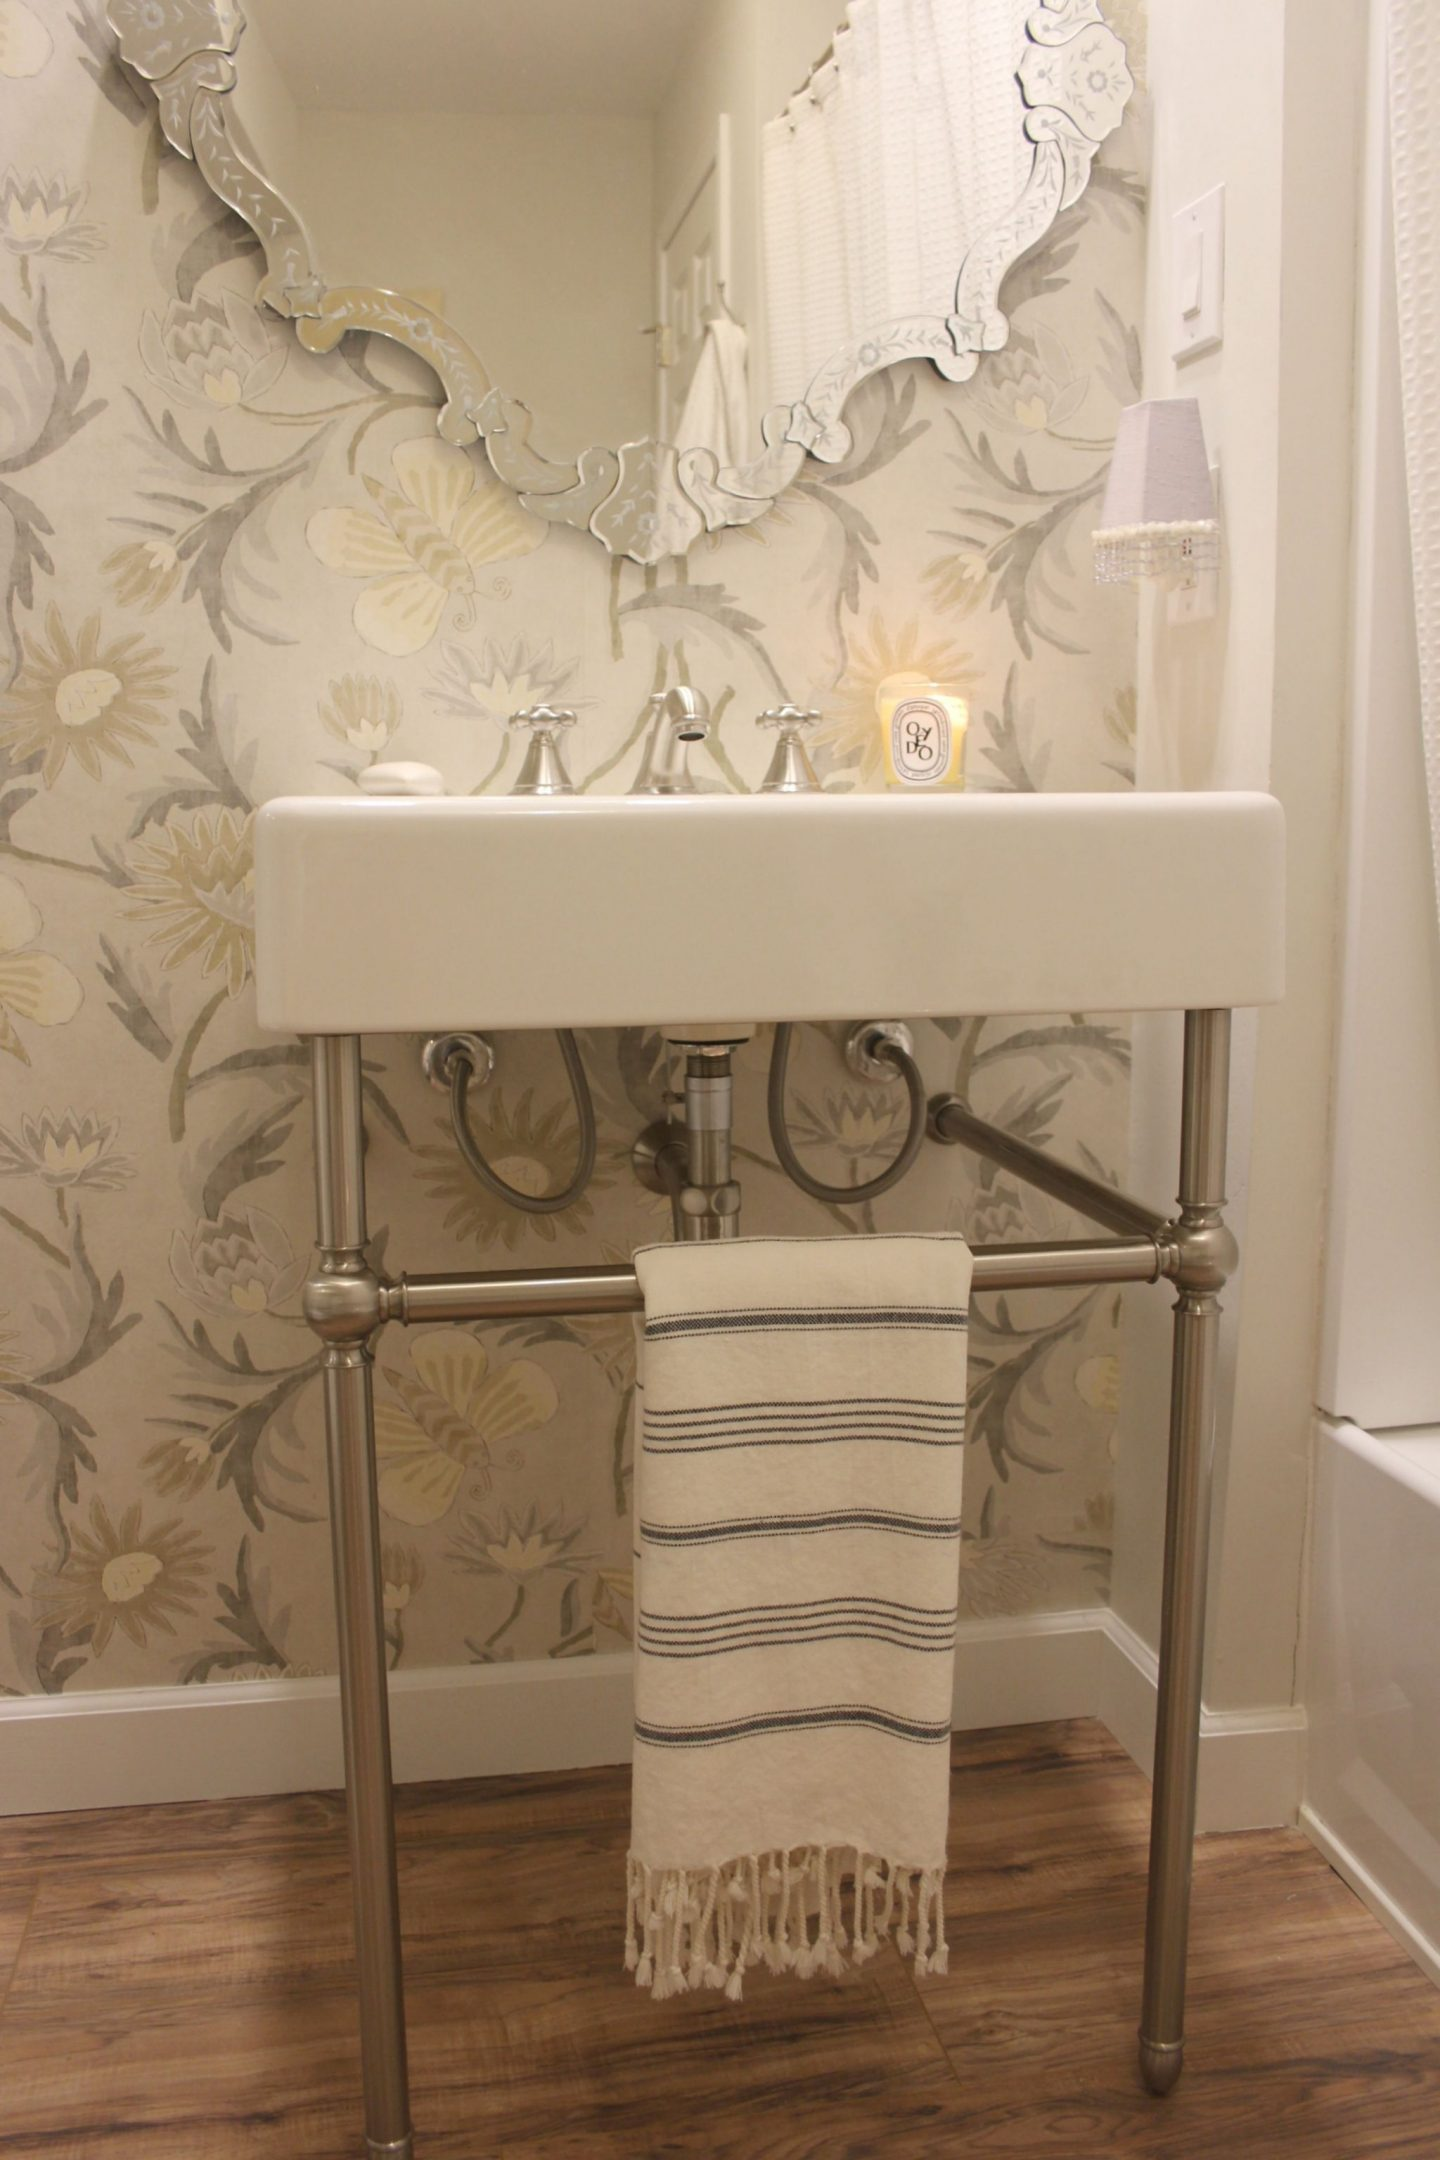 Thibaut Lizette wallpaper has a silvery background and gorgeous butterflies. This is our bathroom with a DXV Oak Hill modern farmhouse fireclay console sink. Hello Lovely Studio. #consolesink #hellolovelystudio